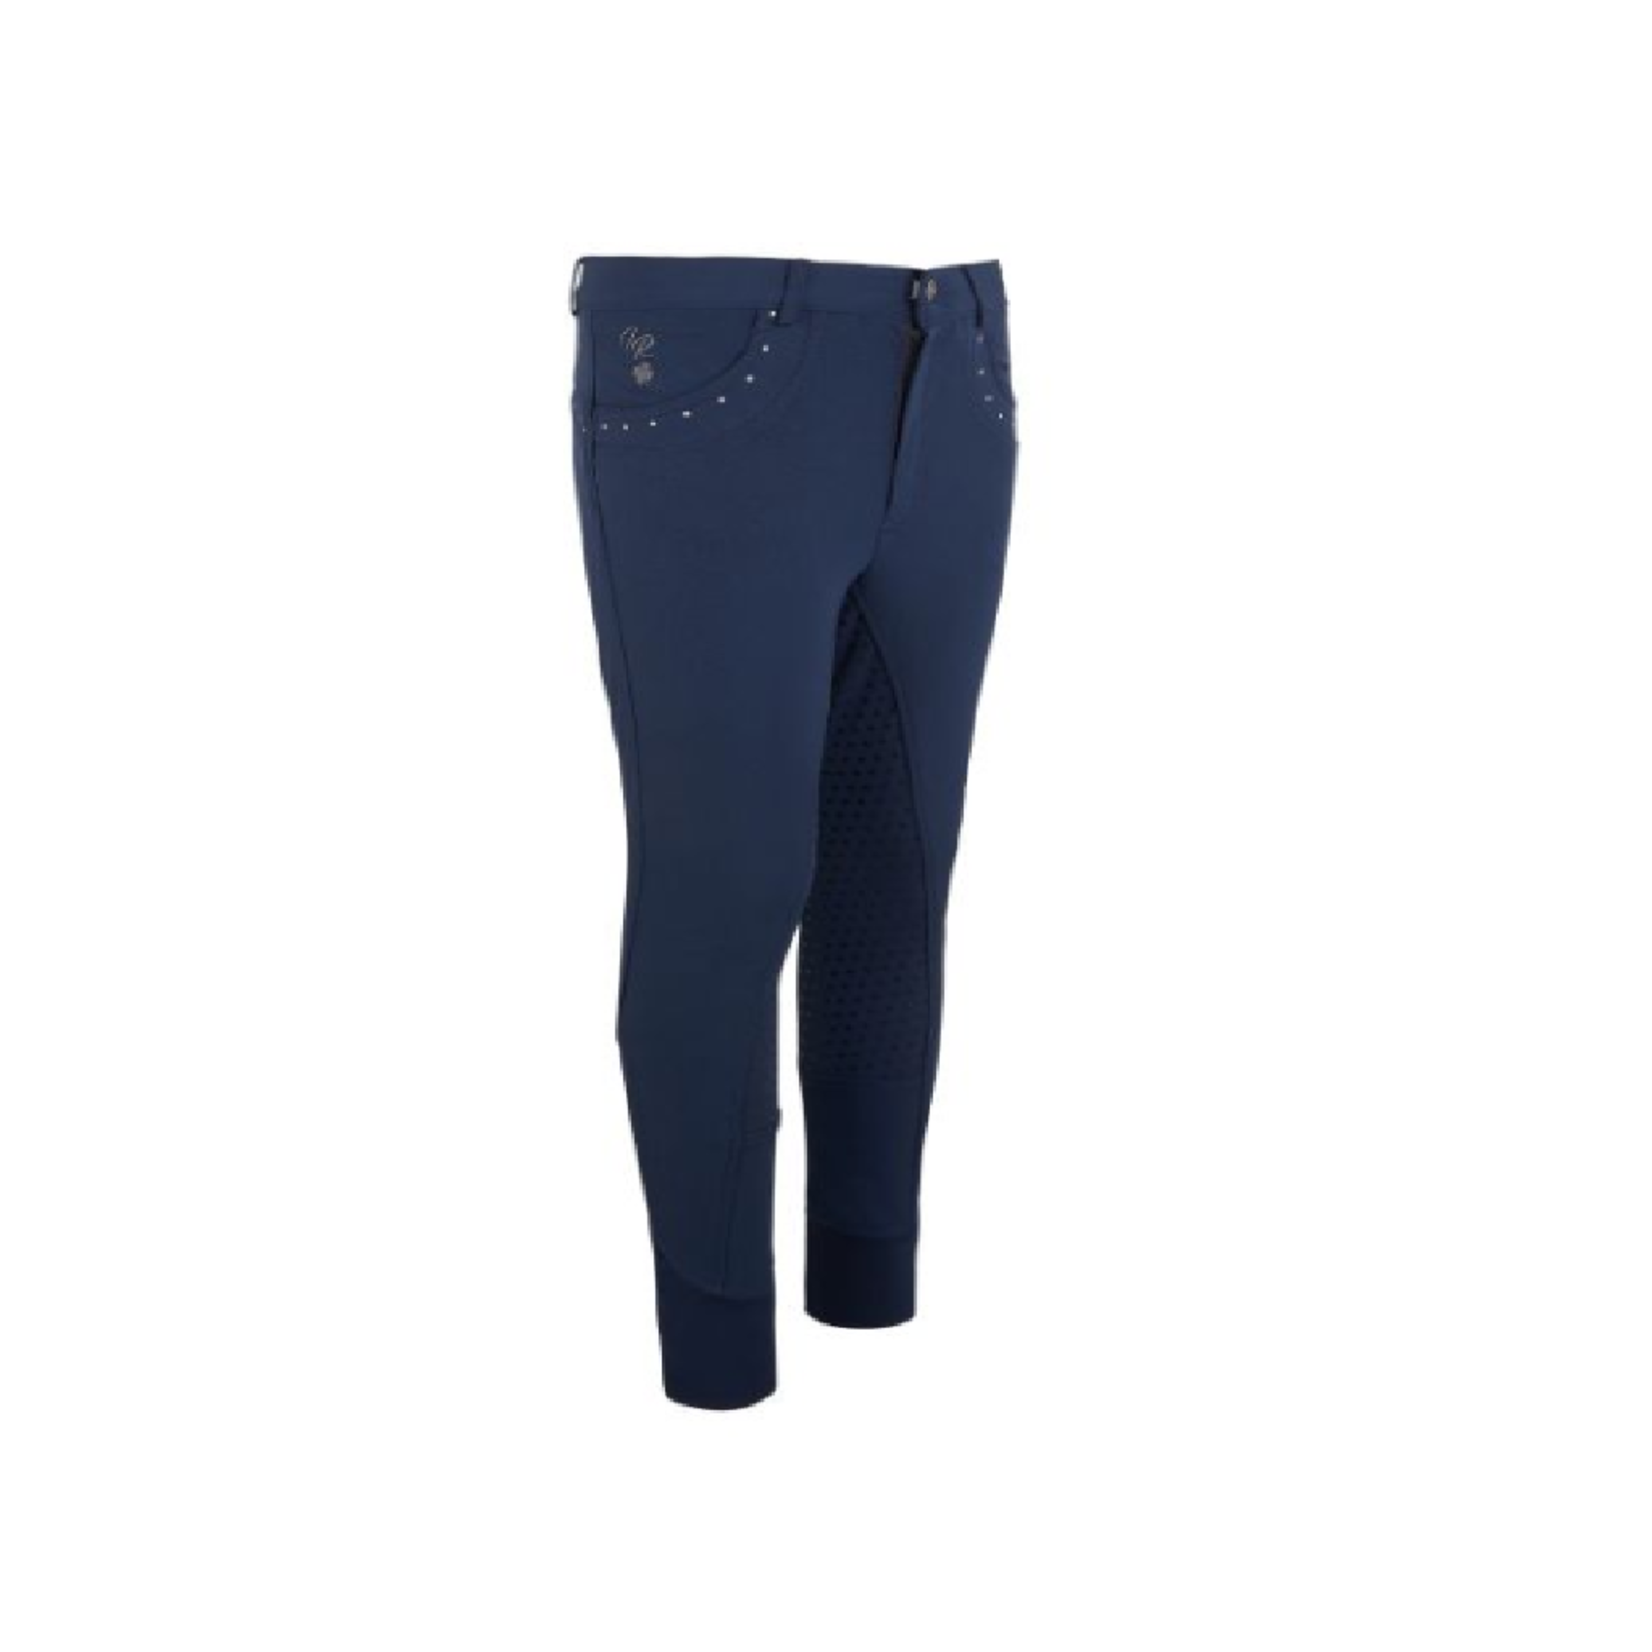 Imperial Imperial Never Grow Full Seat Dames Broek